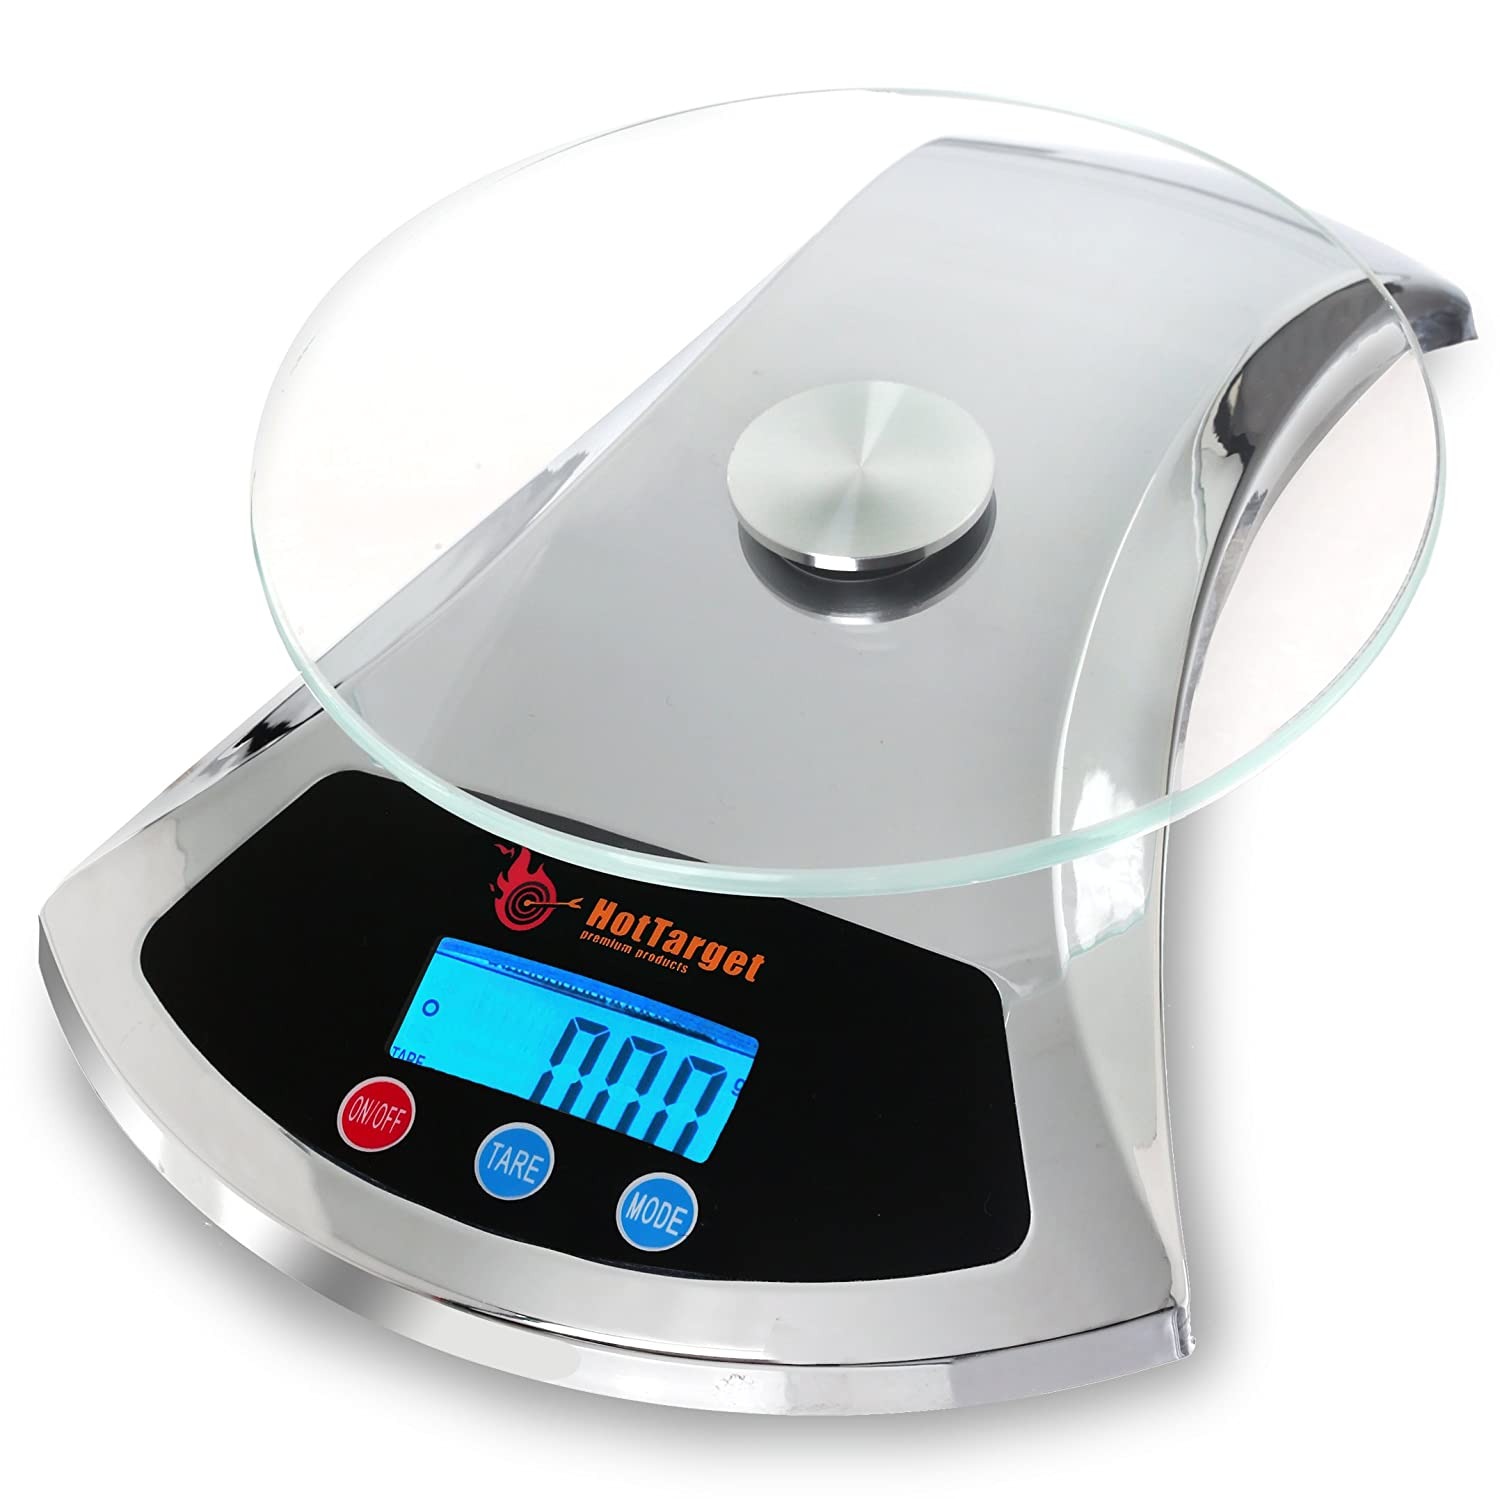 Amazon.com: Hot Target Elegant Digital Kitchen Scale with Extra ...